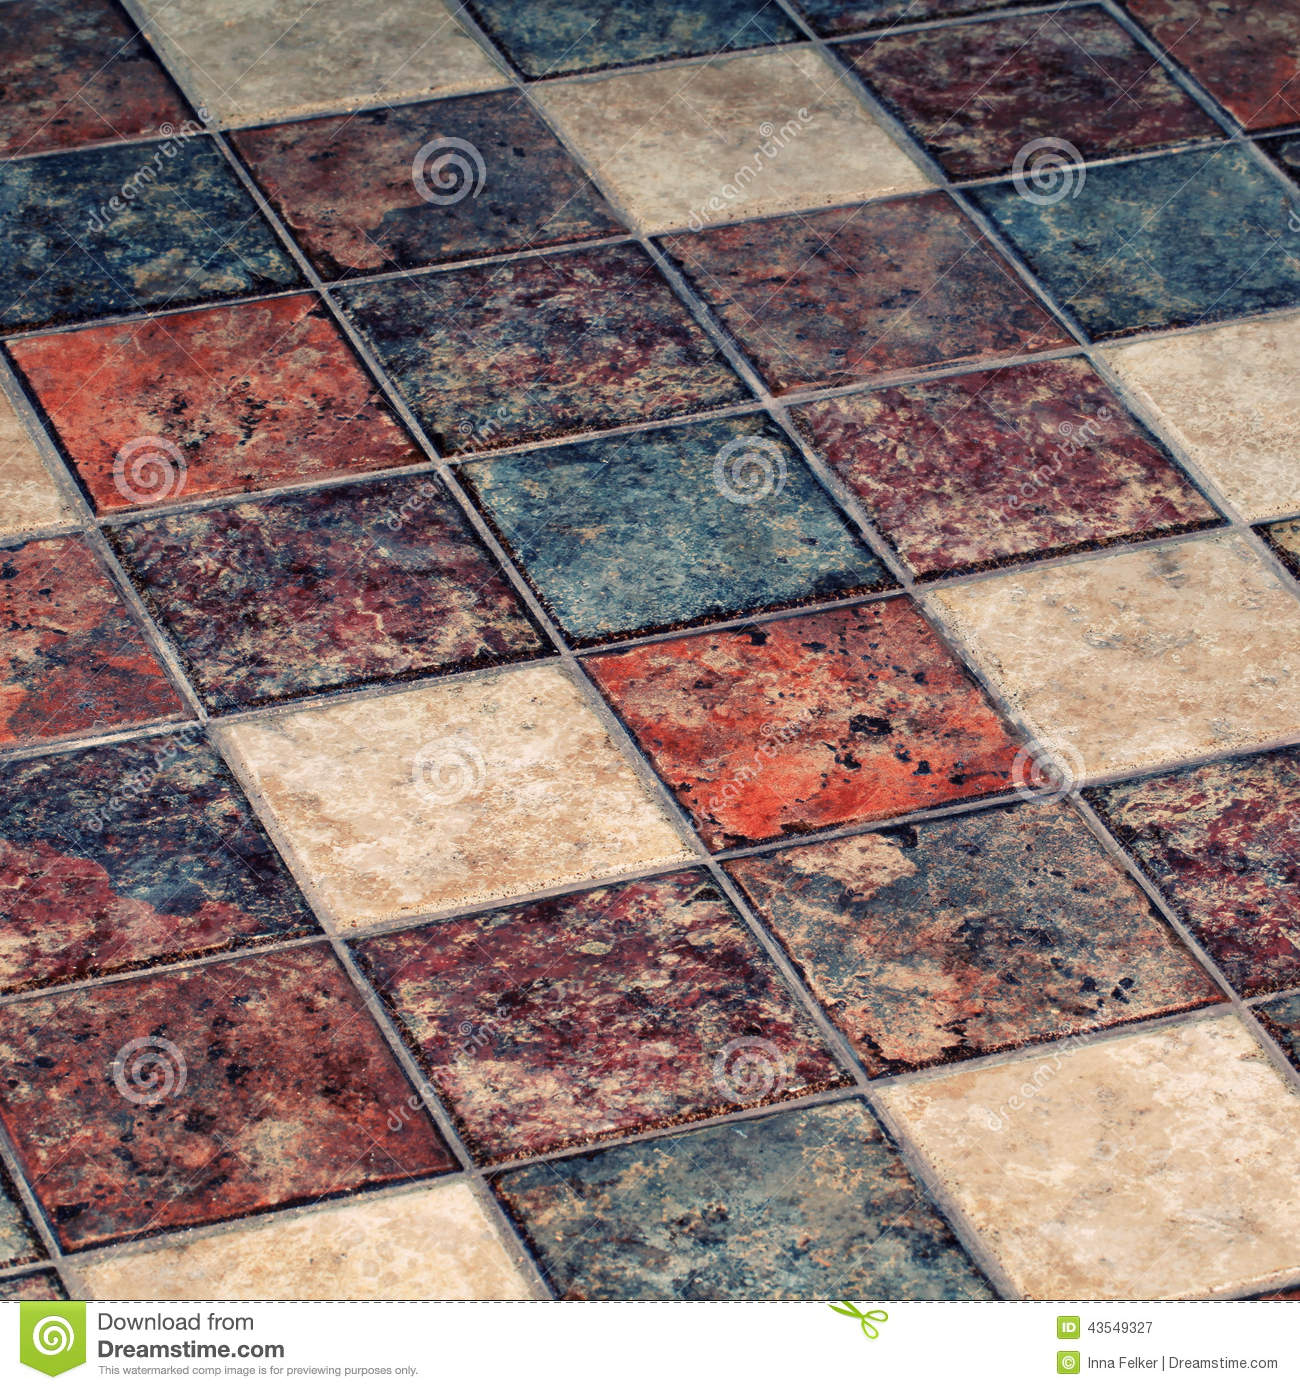 Terracotta tiles stock image image of backdrop pavement 43549327 terracotta tiles dailygadgetfo Choice Image